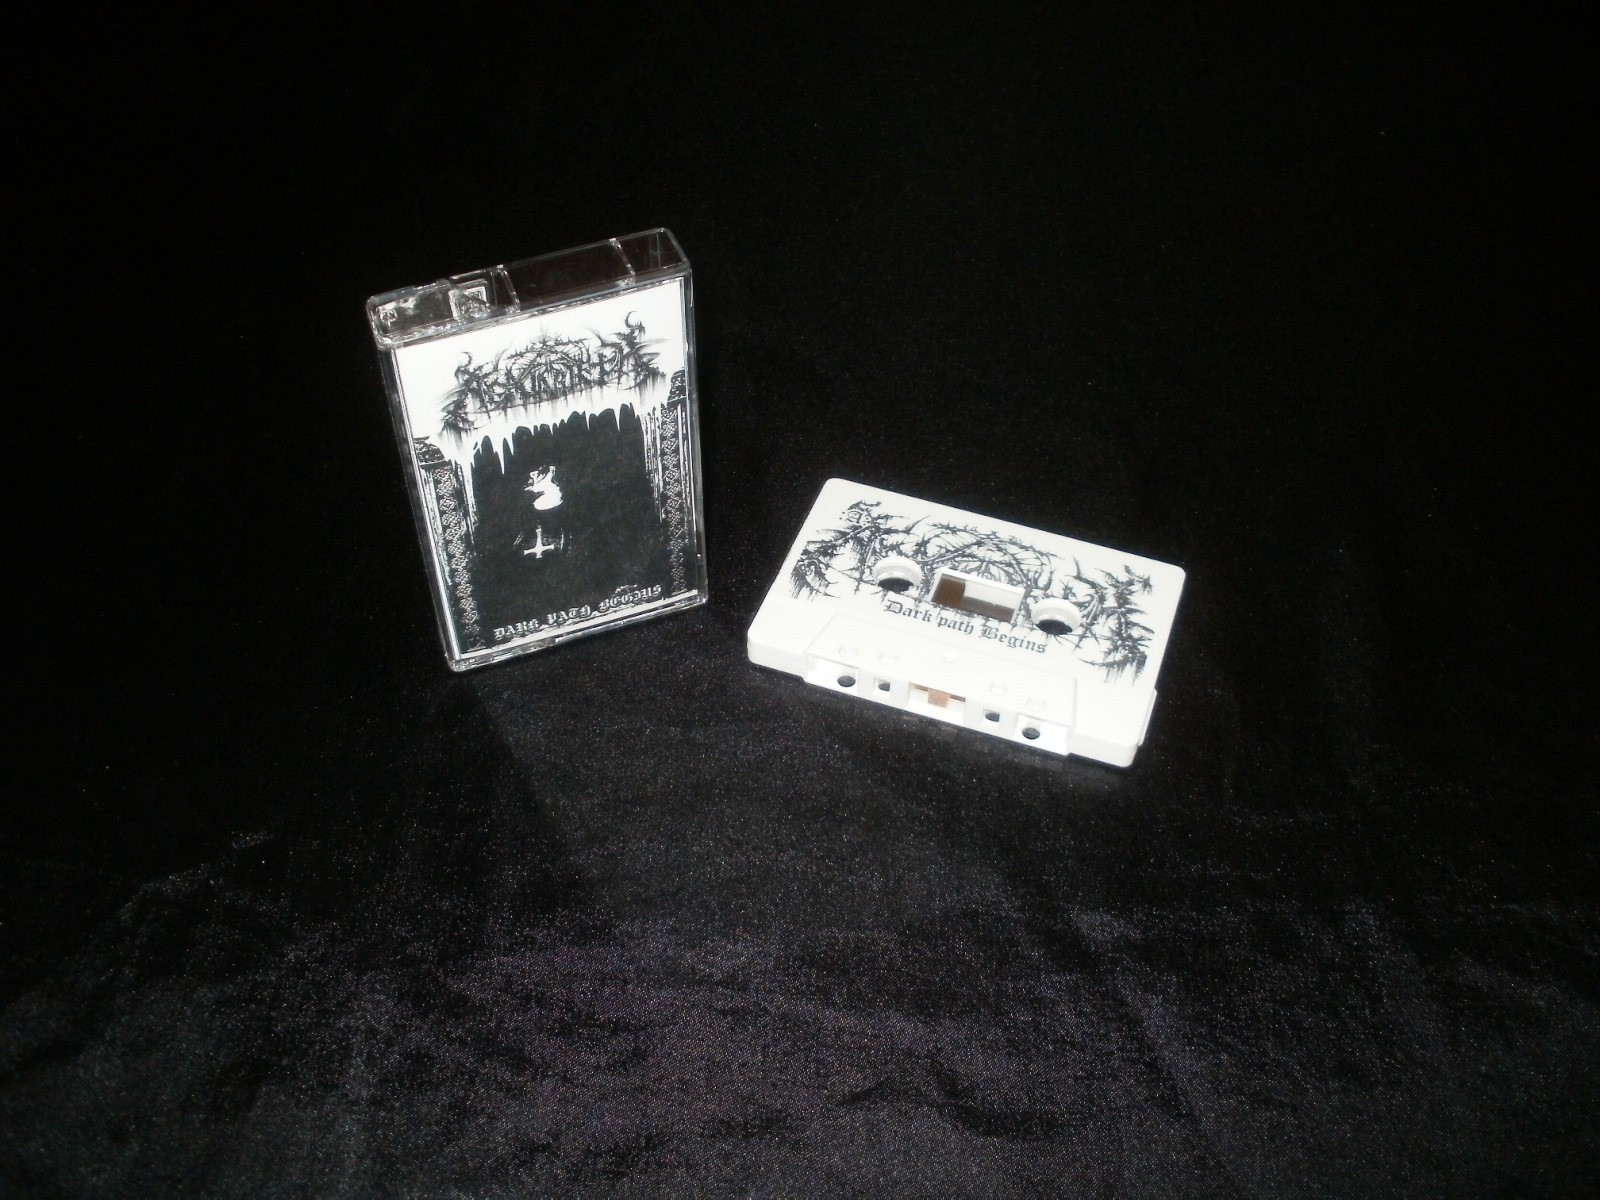 AGALARIETH - Dark Path Begins Pro - Tape